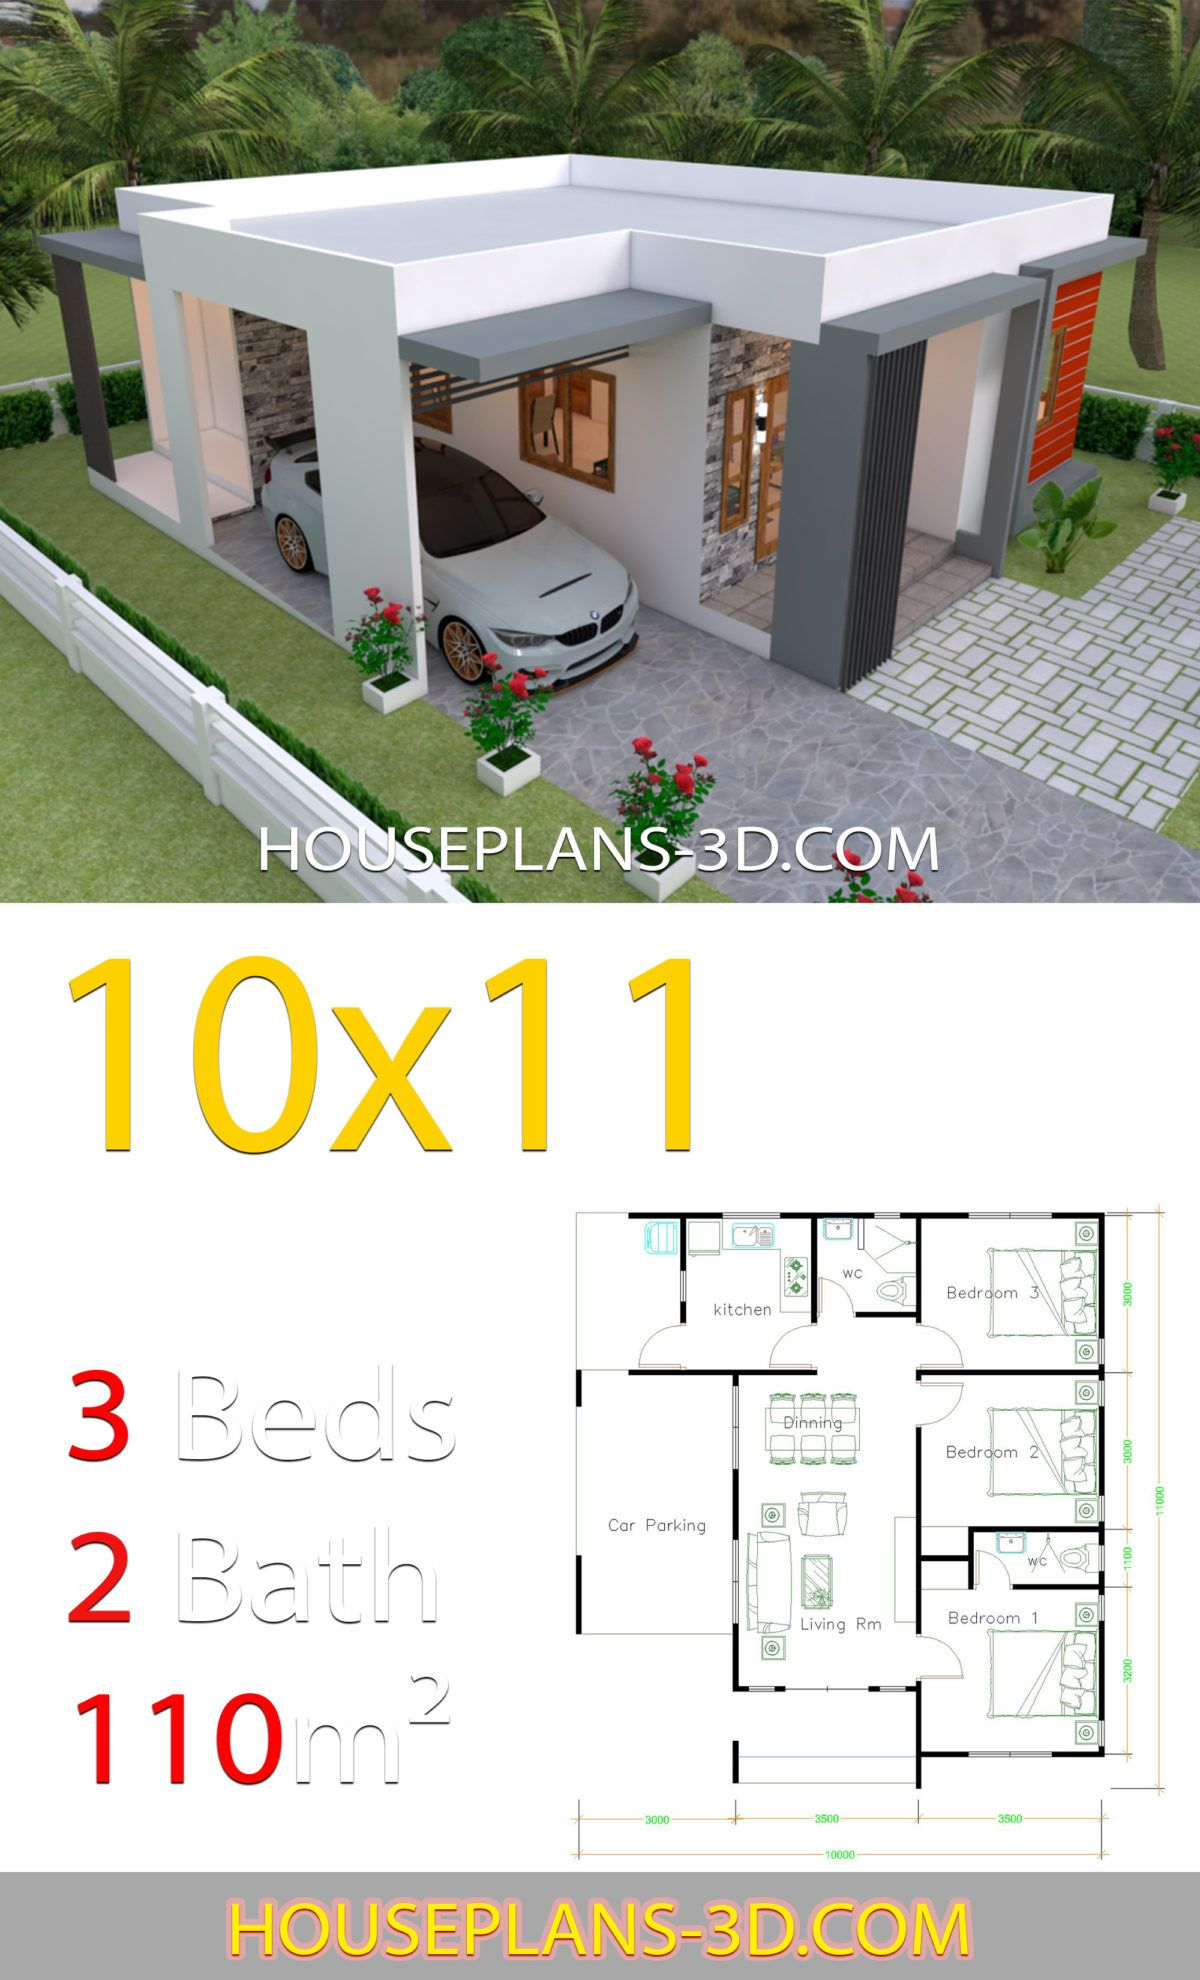 House Design 10x11 With 3 Bedrooms Terrace Roof House Plans 3d House Construction Plan Minimalist House Design Simple House Design